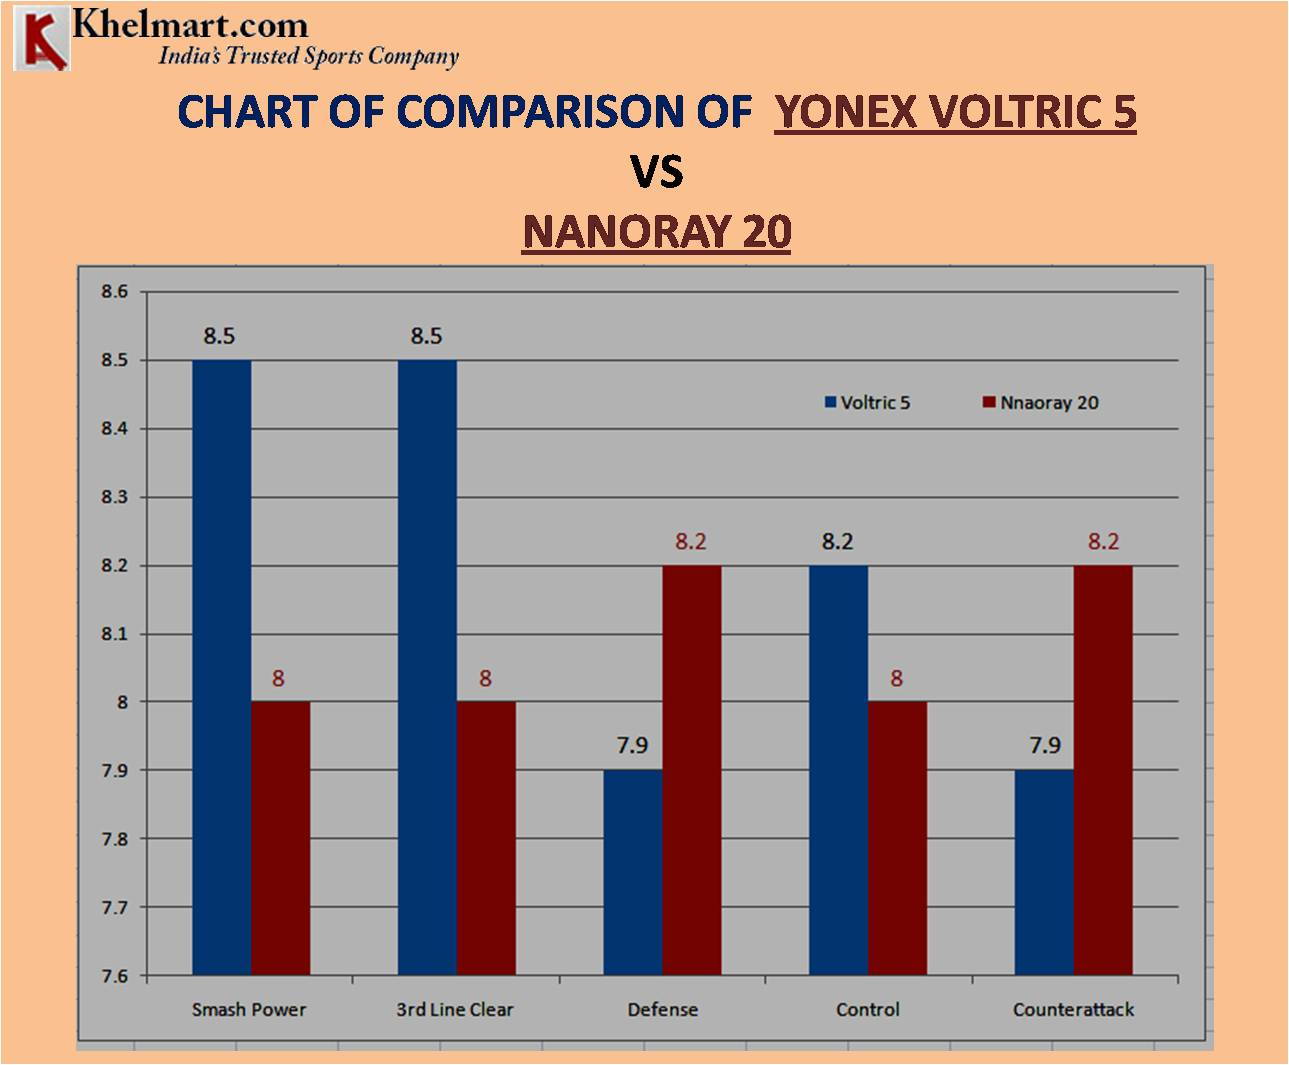 CHART OF COMPARISON OF YONEX VOLTRIC 5 VS NANORAY 20